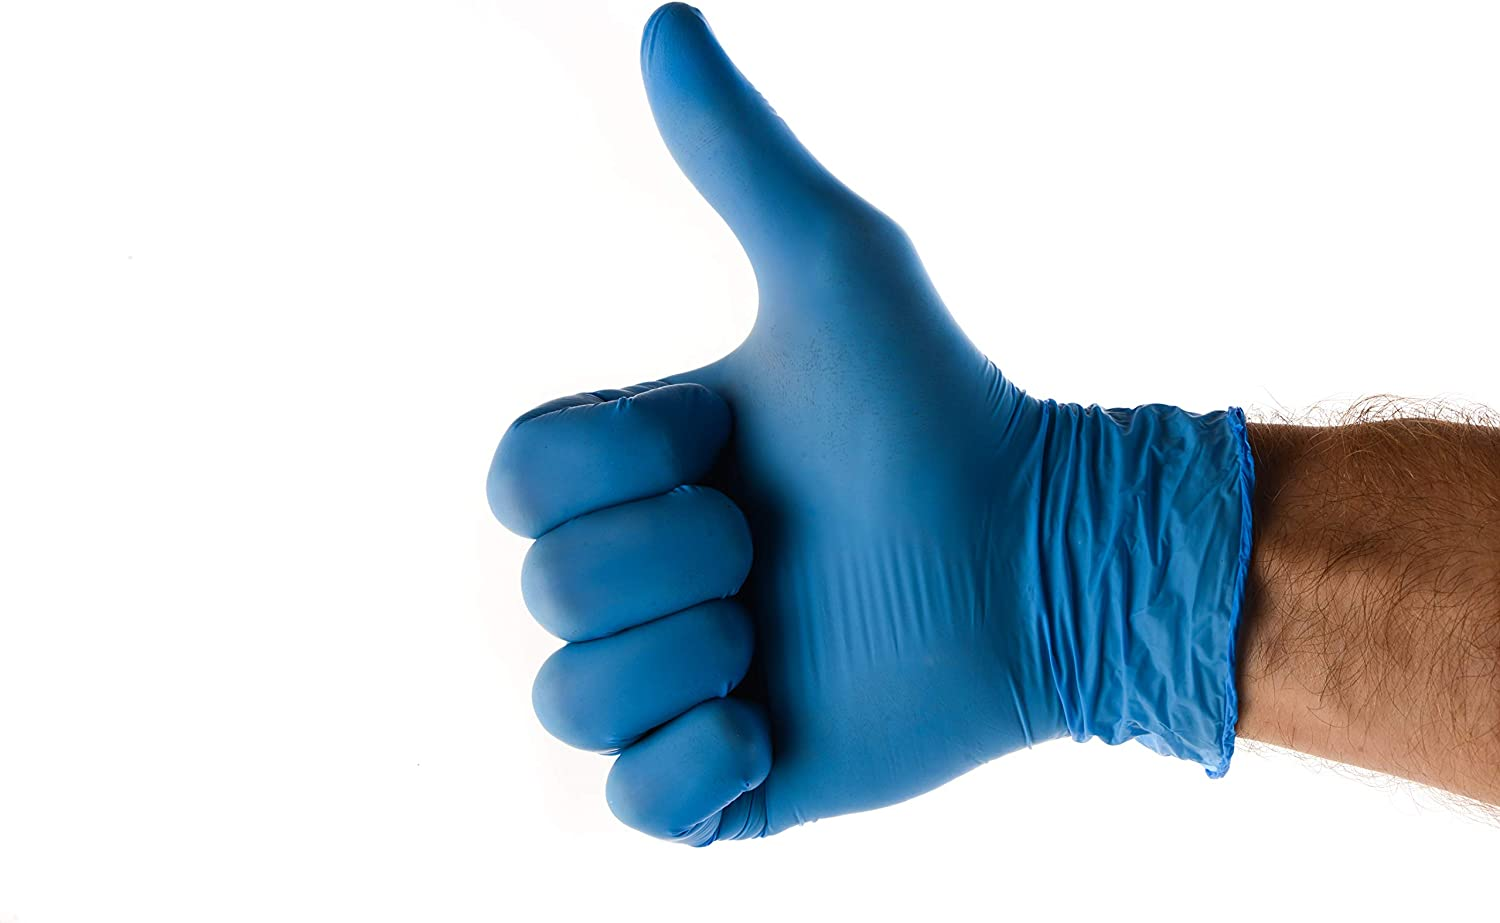 EcoQuality - Nitrile Exam Gloves Large 100ct - Disposable, Latex Rubber Free, Powder Free, Medical Exam Gloves, Non Sterile, Food Safe, 4 Mil, Indigo Color, Convenient Dispenser